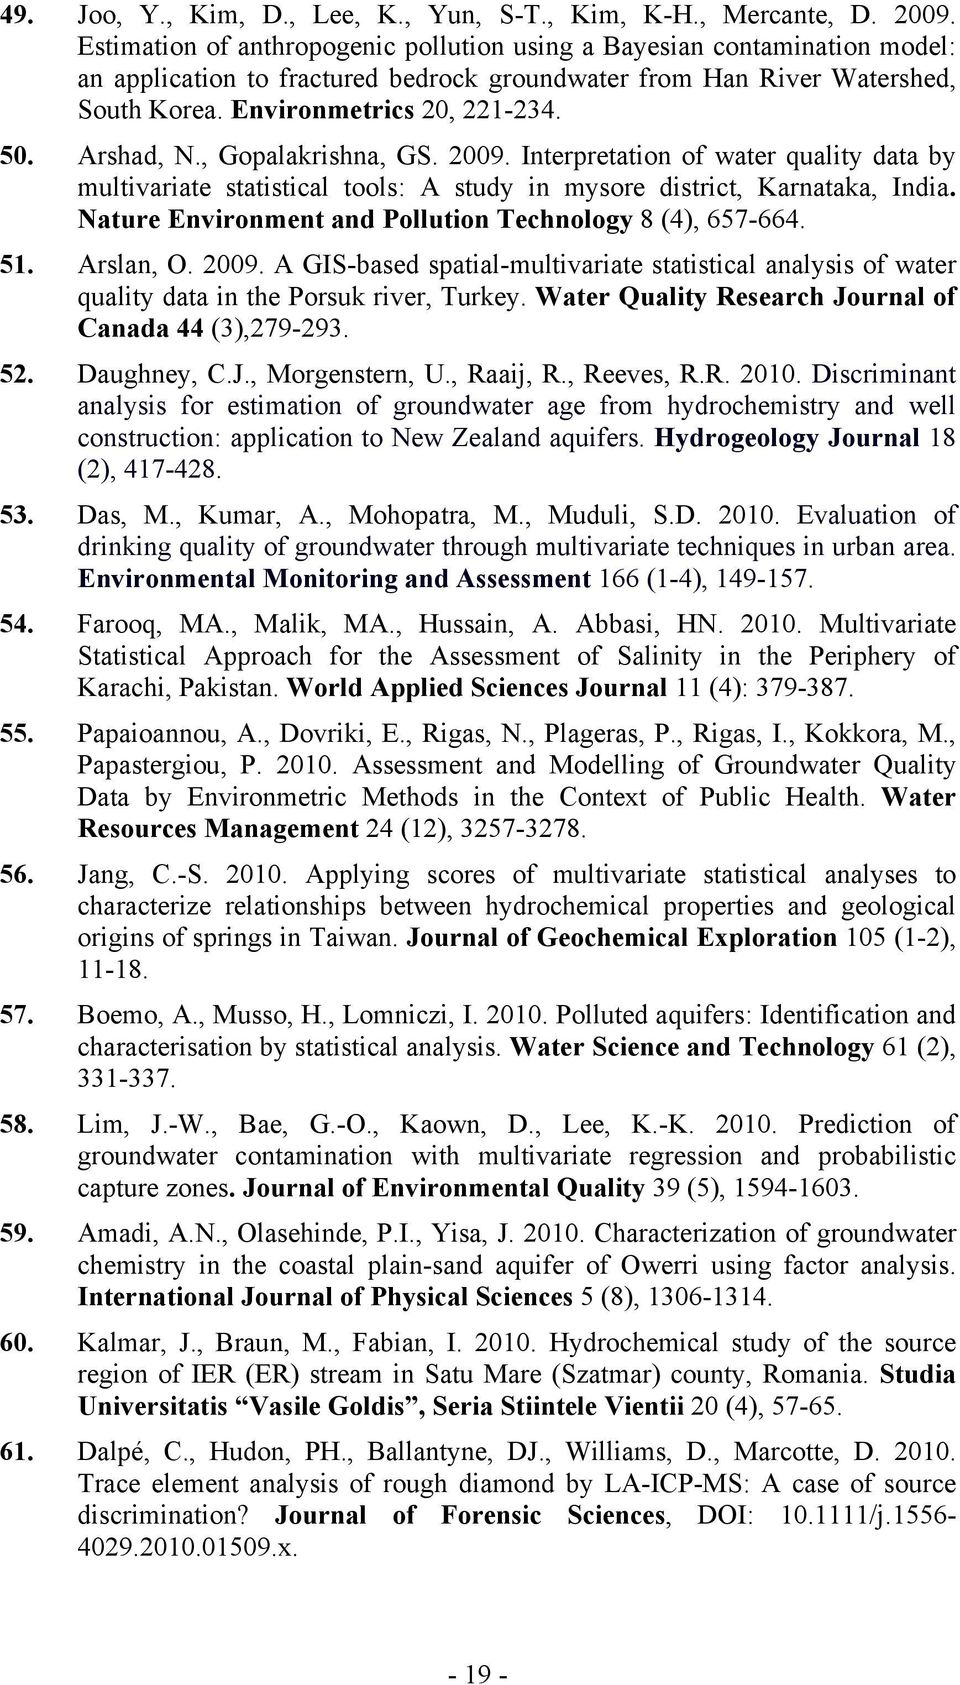 Arshad, N., Gopalakrishna, GS. 2009. Interpretation of water quality data by multivariate statistical tools: A study in mysore district, Karnataka, India.